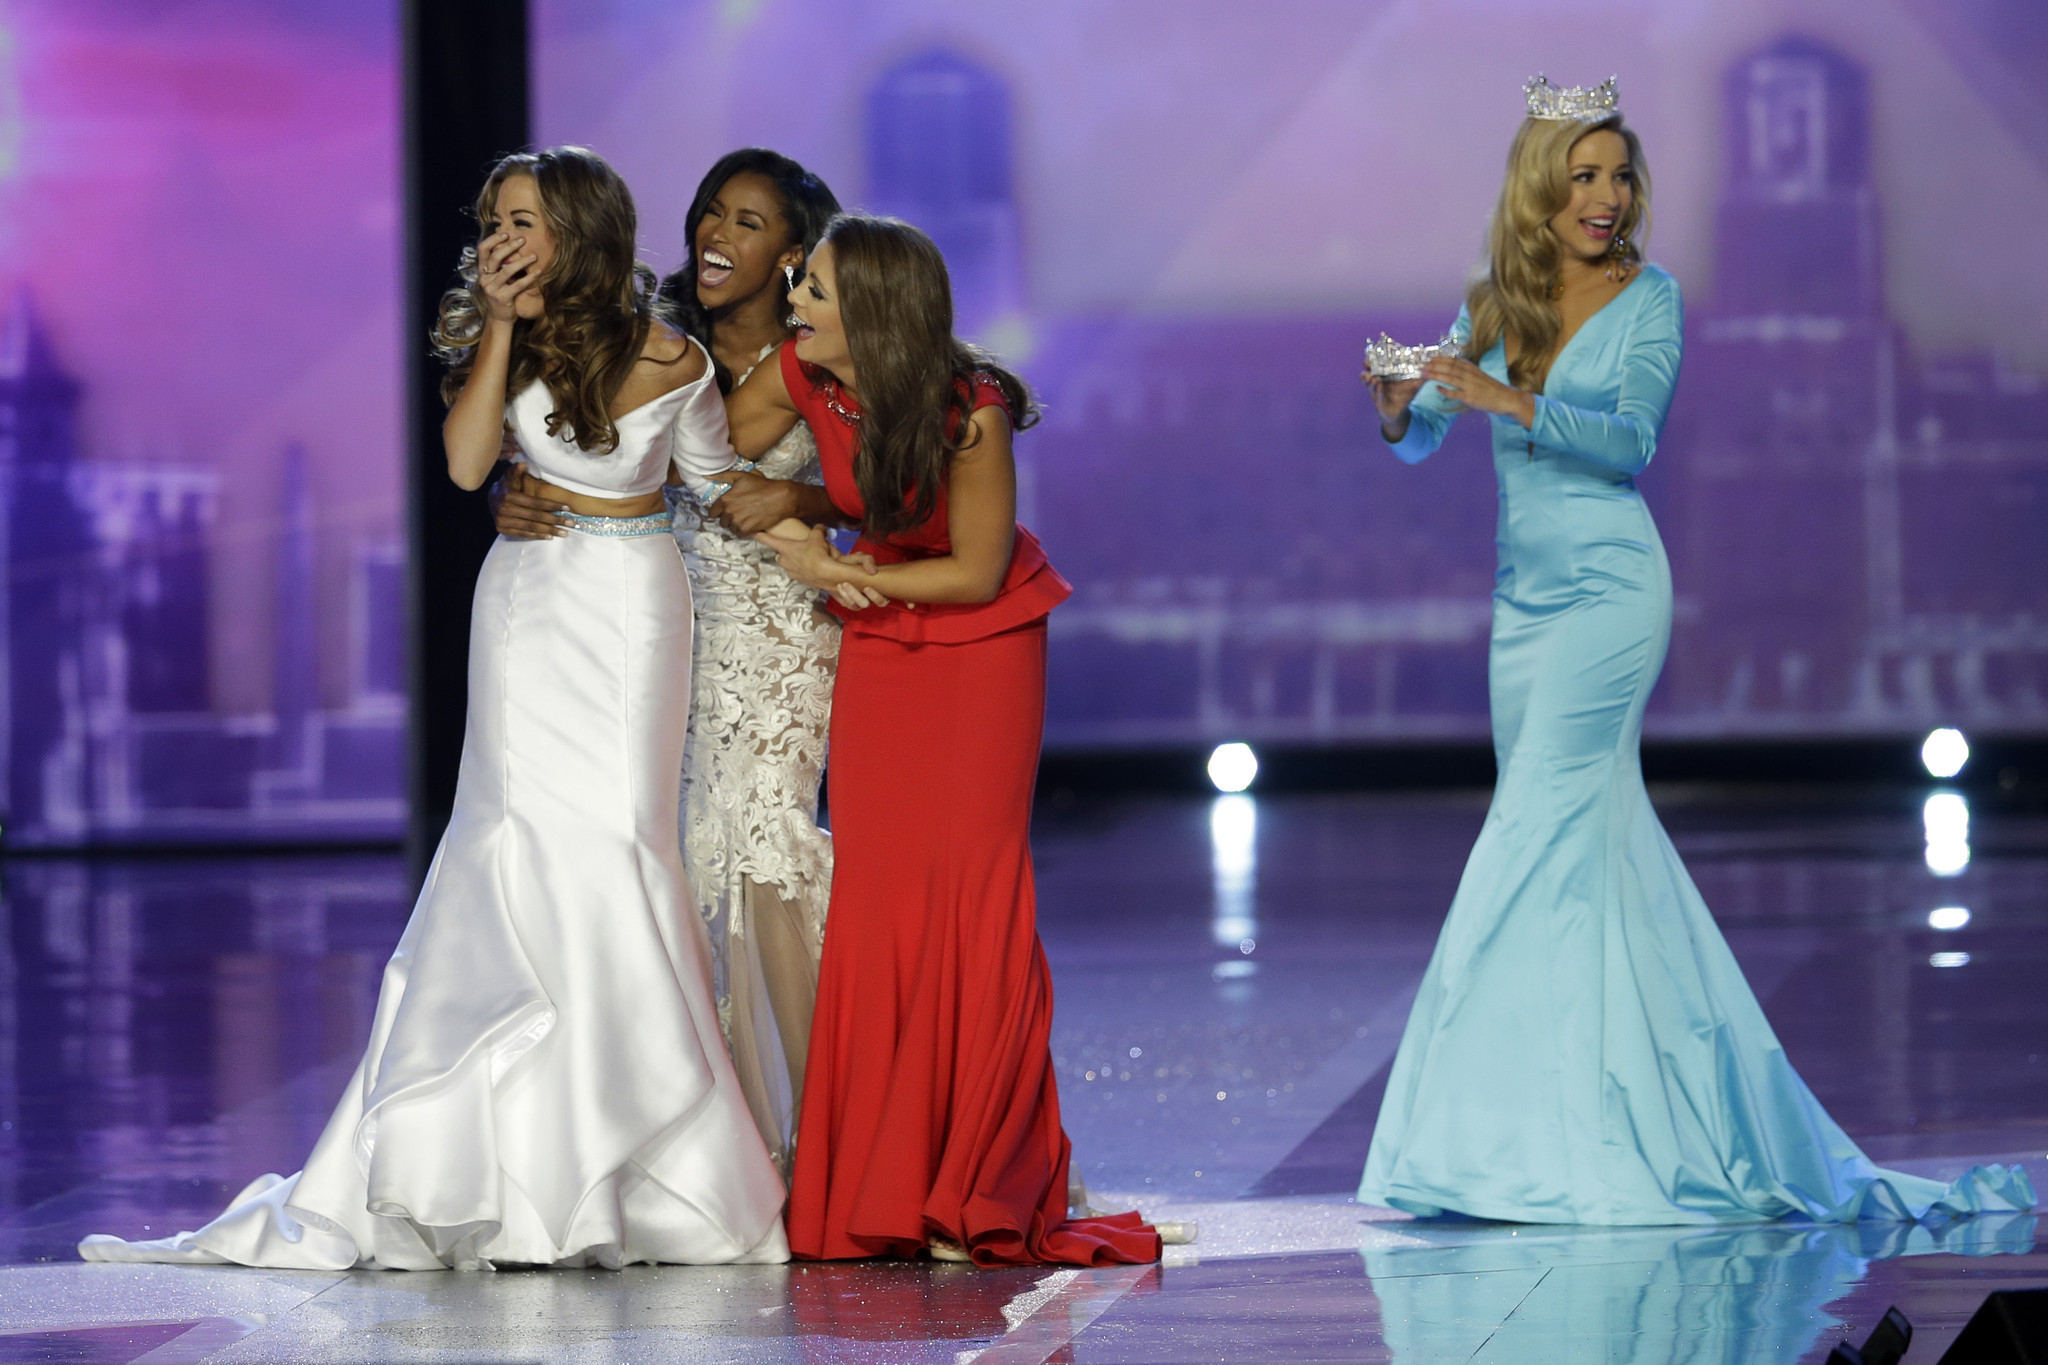 Miss Georgia Betty Cantrell wins Miss America pageant - Chicago Tribune